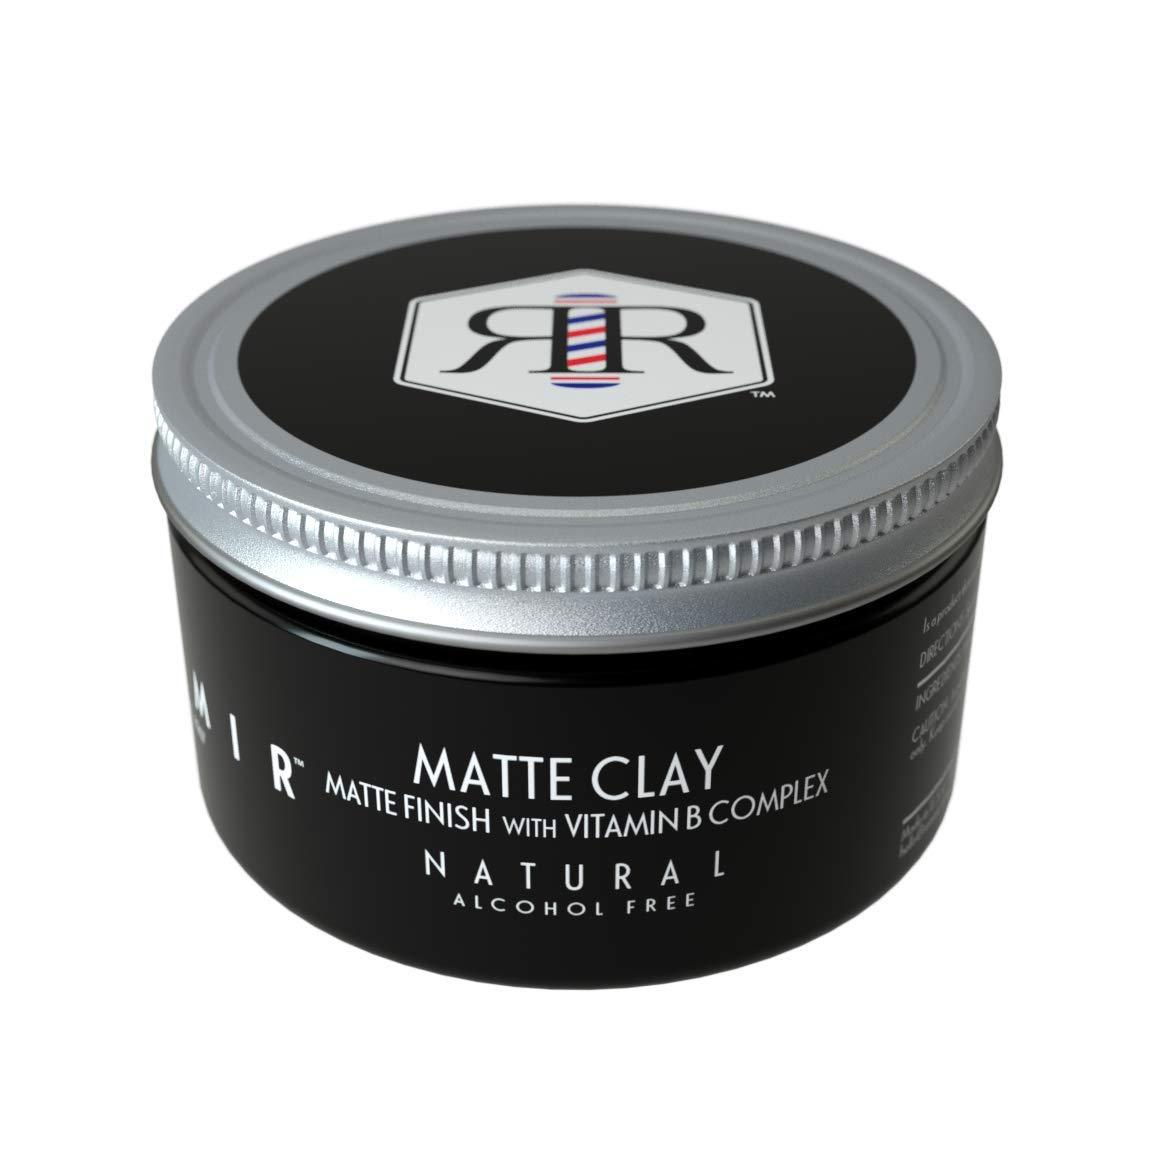 Reamir Men's Hair Styling Matte Clay - Men's Hair Styling Product - Medium Hold Matte Finish - Frizz Protection - All Natural 4 oz by REAMIR & CO